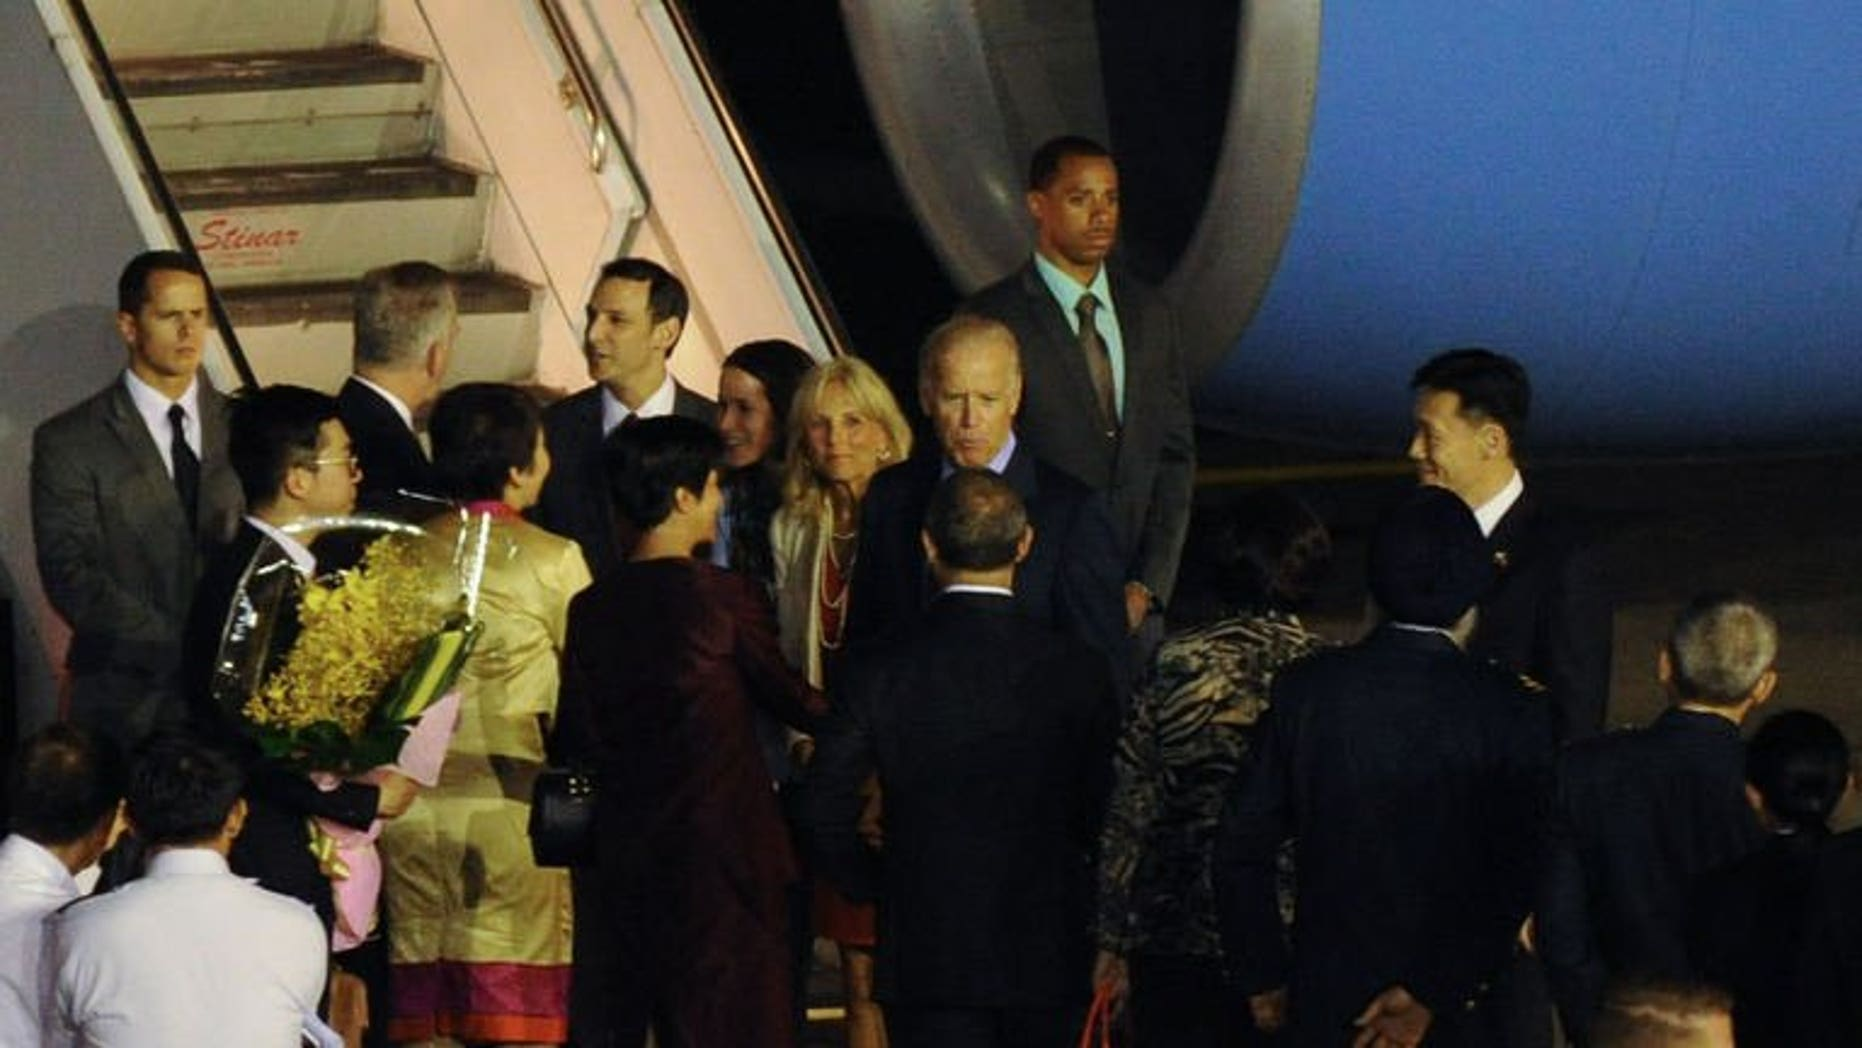 US Vice President Joe Biden (centre R) with his wife Jill Biden (centre L) greeted by officials upon arrival at the Paya Lebar military airport in Singapore on July 25, 2013. Biden arrived in Singapore on Thursday for a visit in which he is expected discuss trade ties and ways to calm regional maritime tensions.